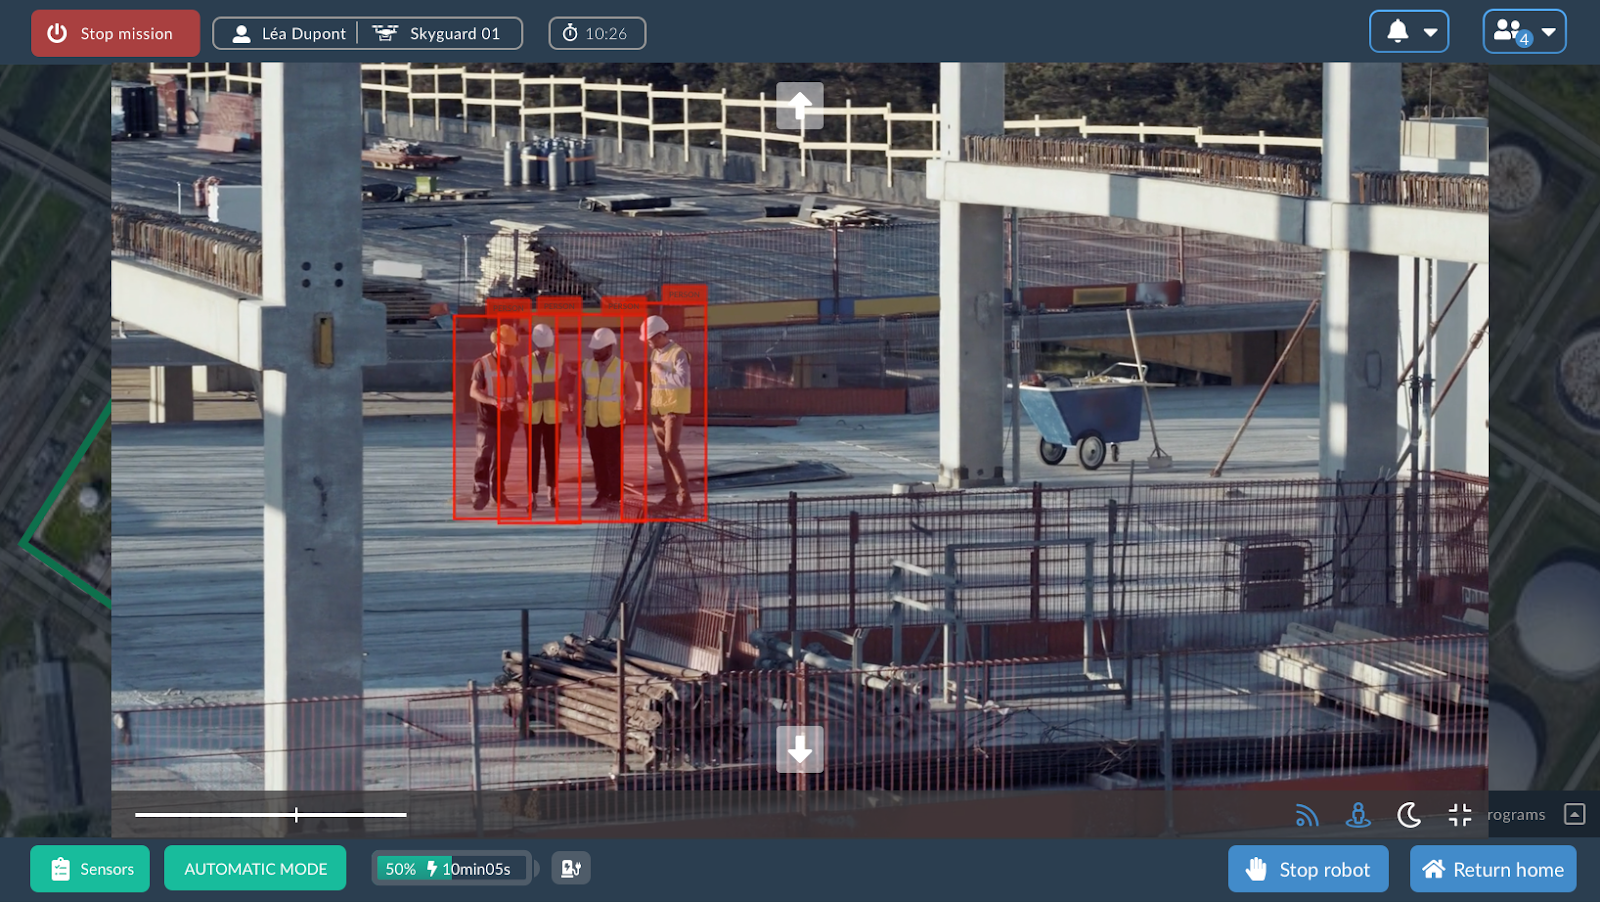 Real-time object detection (workers on a construction site) streamed directly from the drone to UAVIA's web application. All the image processing, drone navigation, and object detection inference are processed in the autonomous drone.